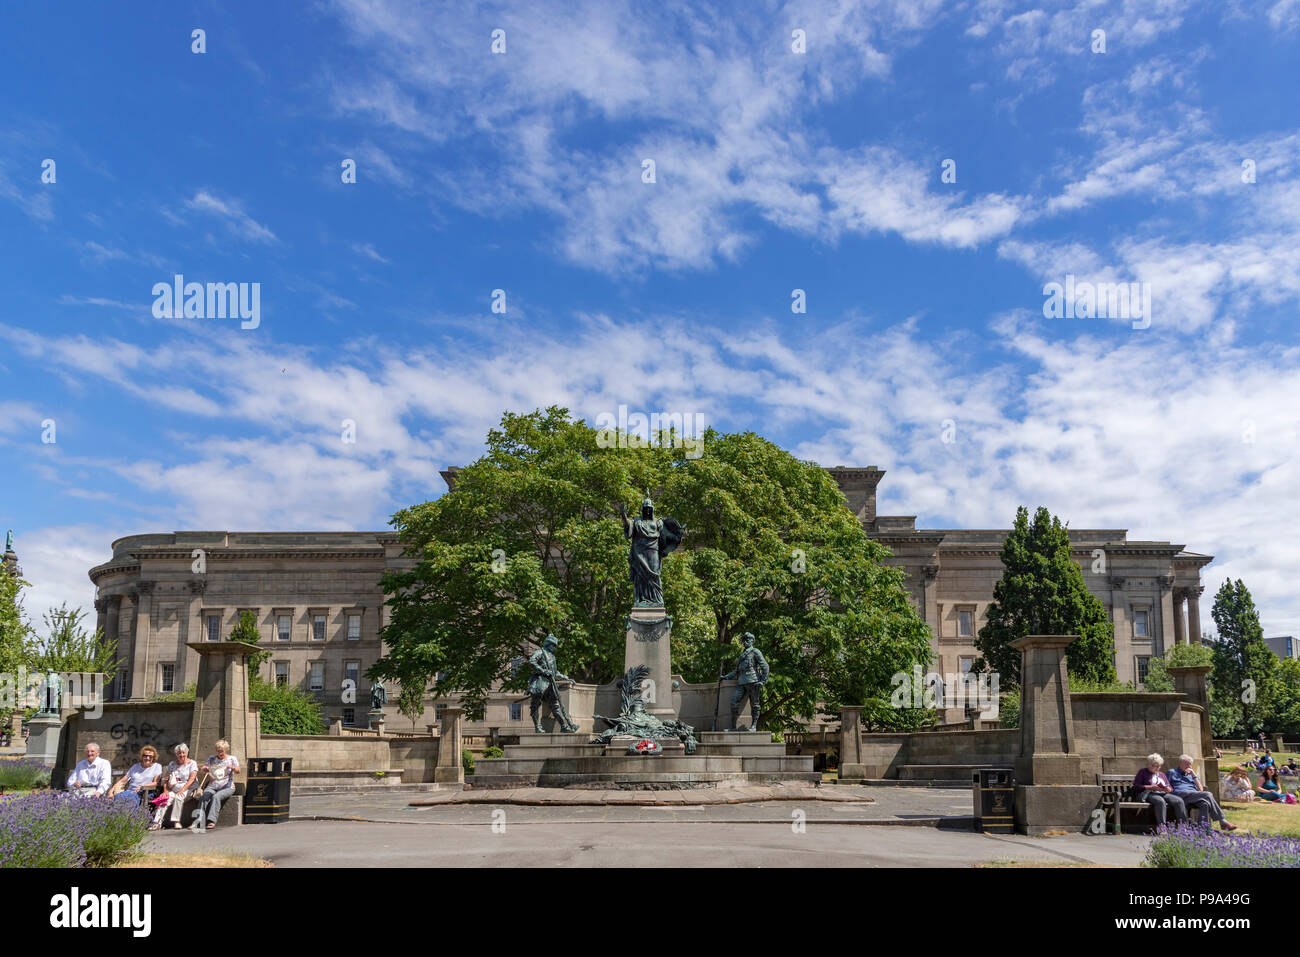 The St. Johns gardens in Liverpool by St Georges hall the monument commemorates the service of the King's Regiment in the South African War. - Stock Image